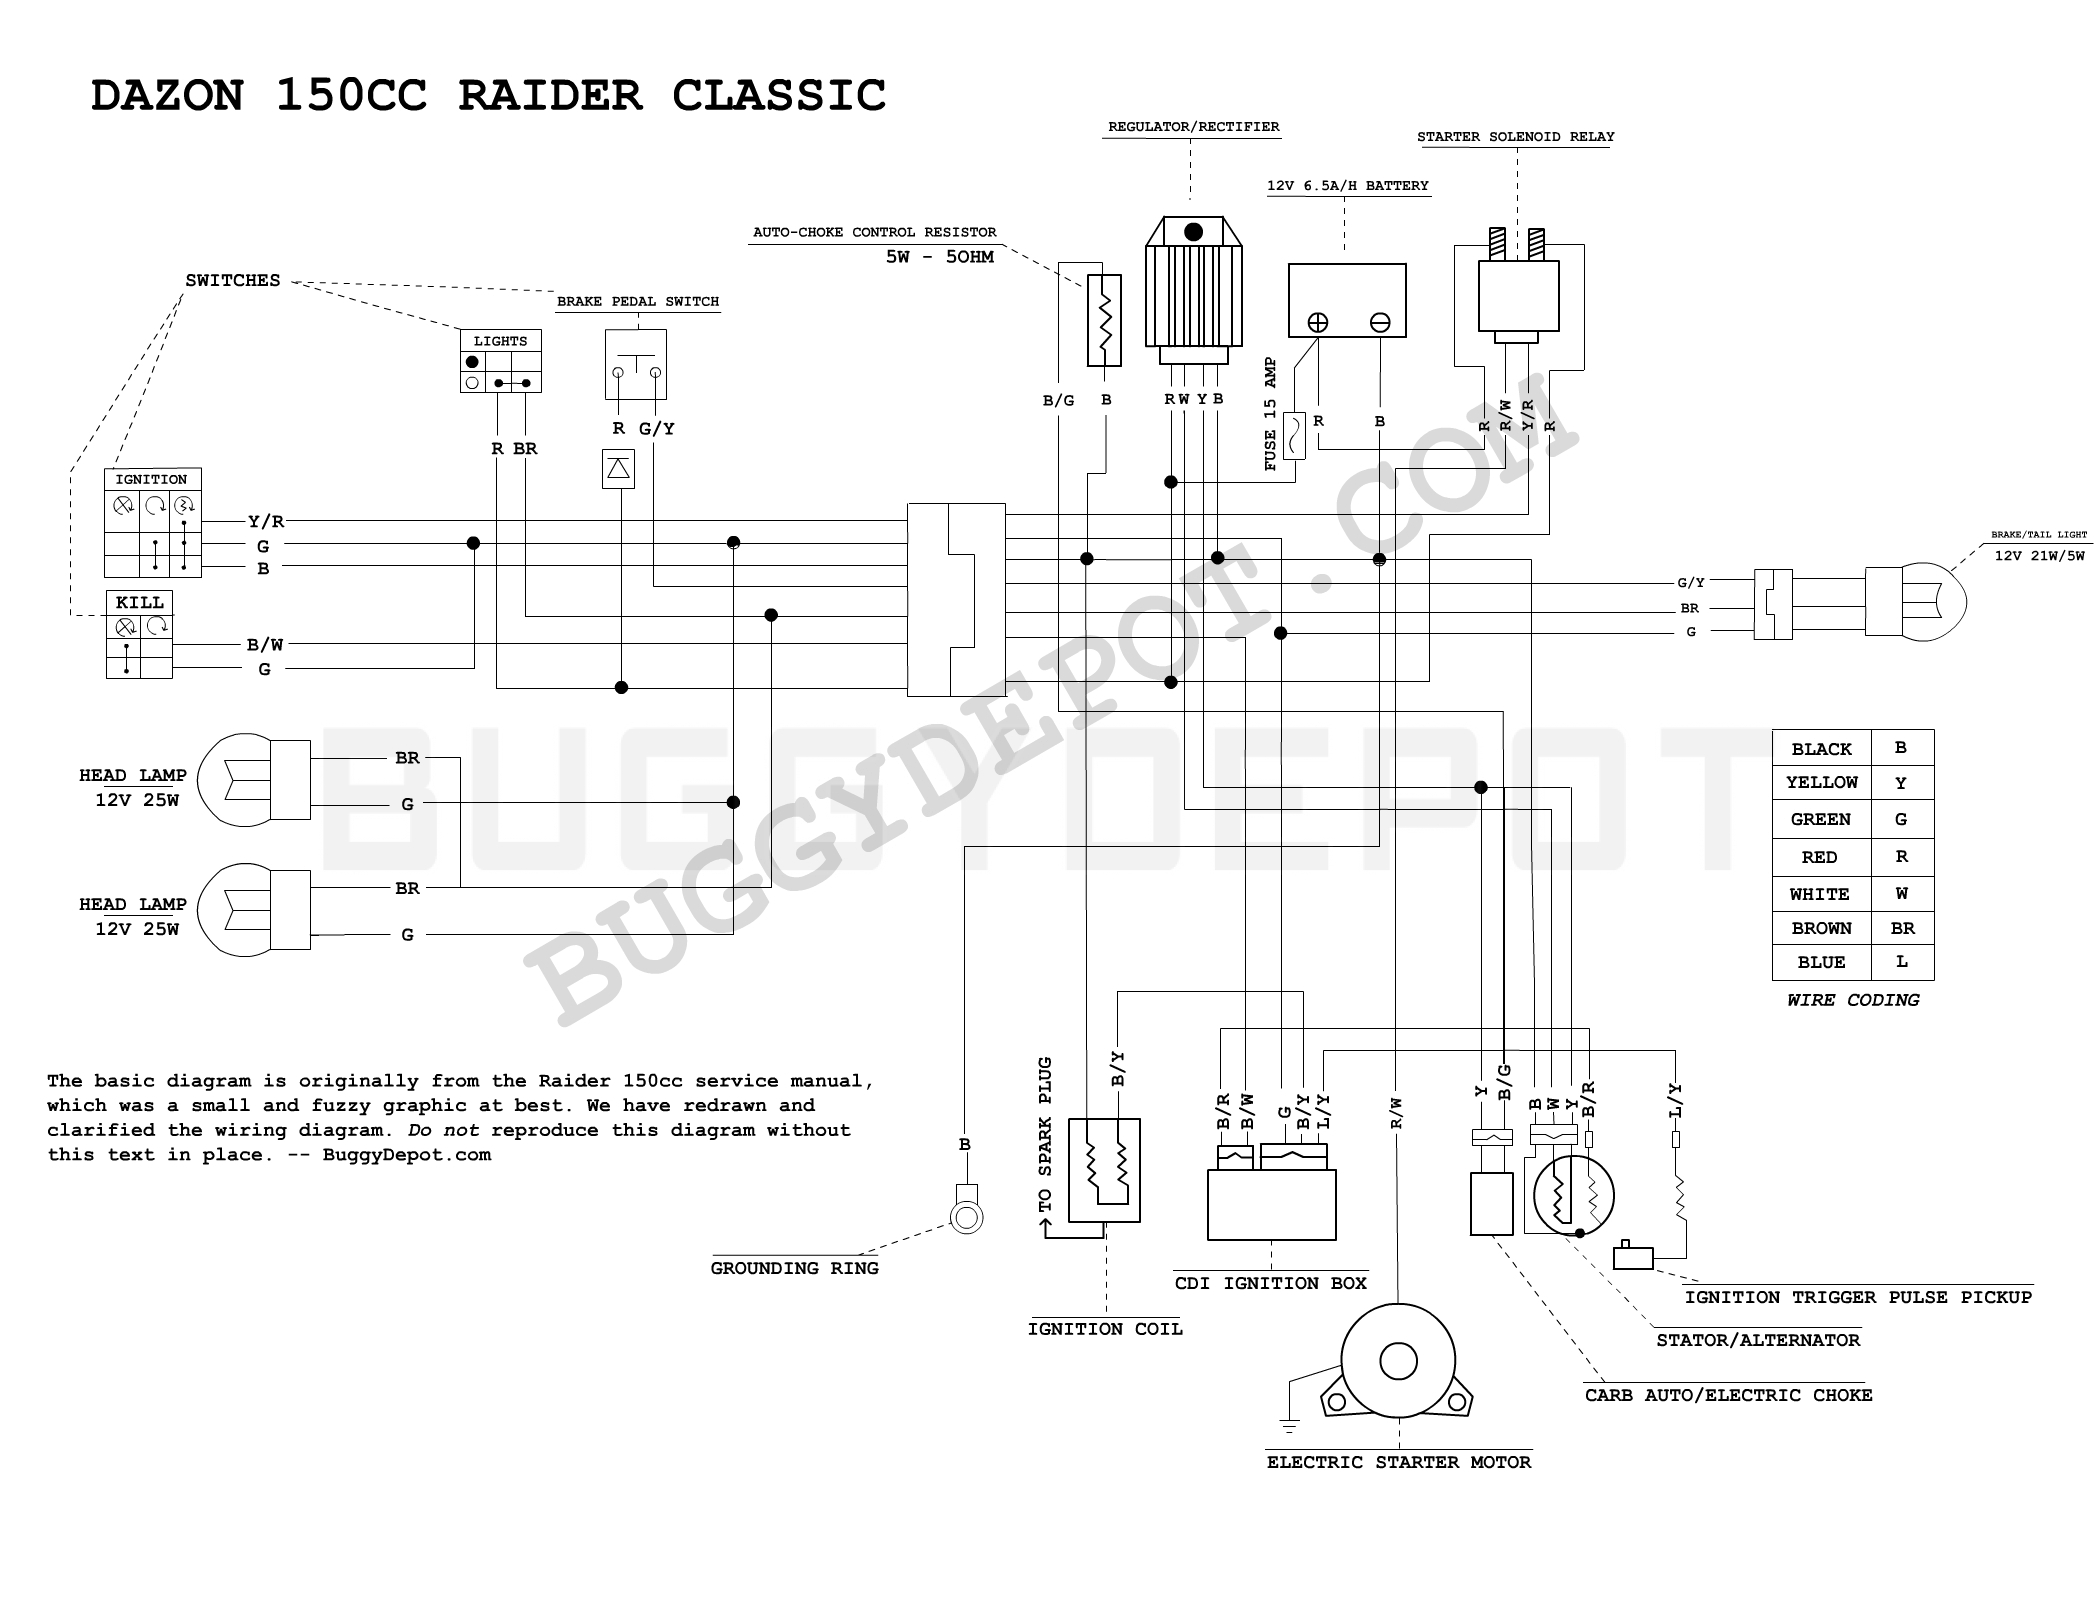 article_33_1278205207 crossfire 150r wiring diagram buggy depot technical center  at edmiracle.co